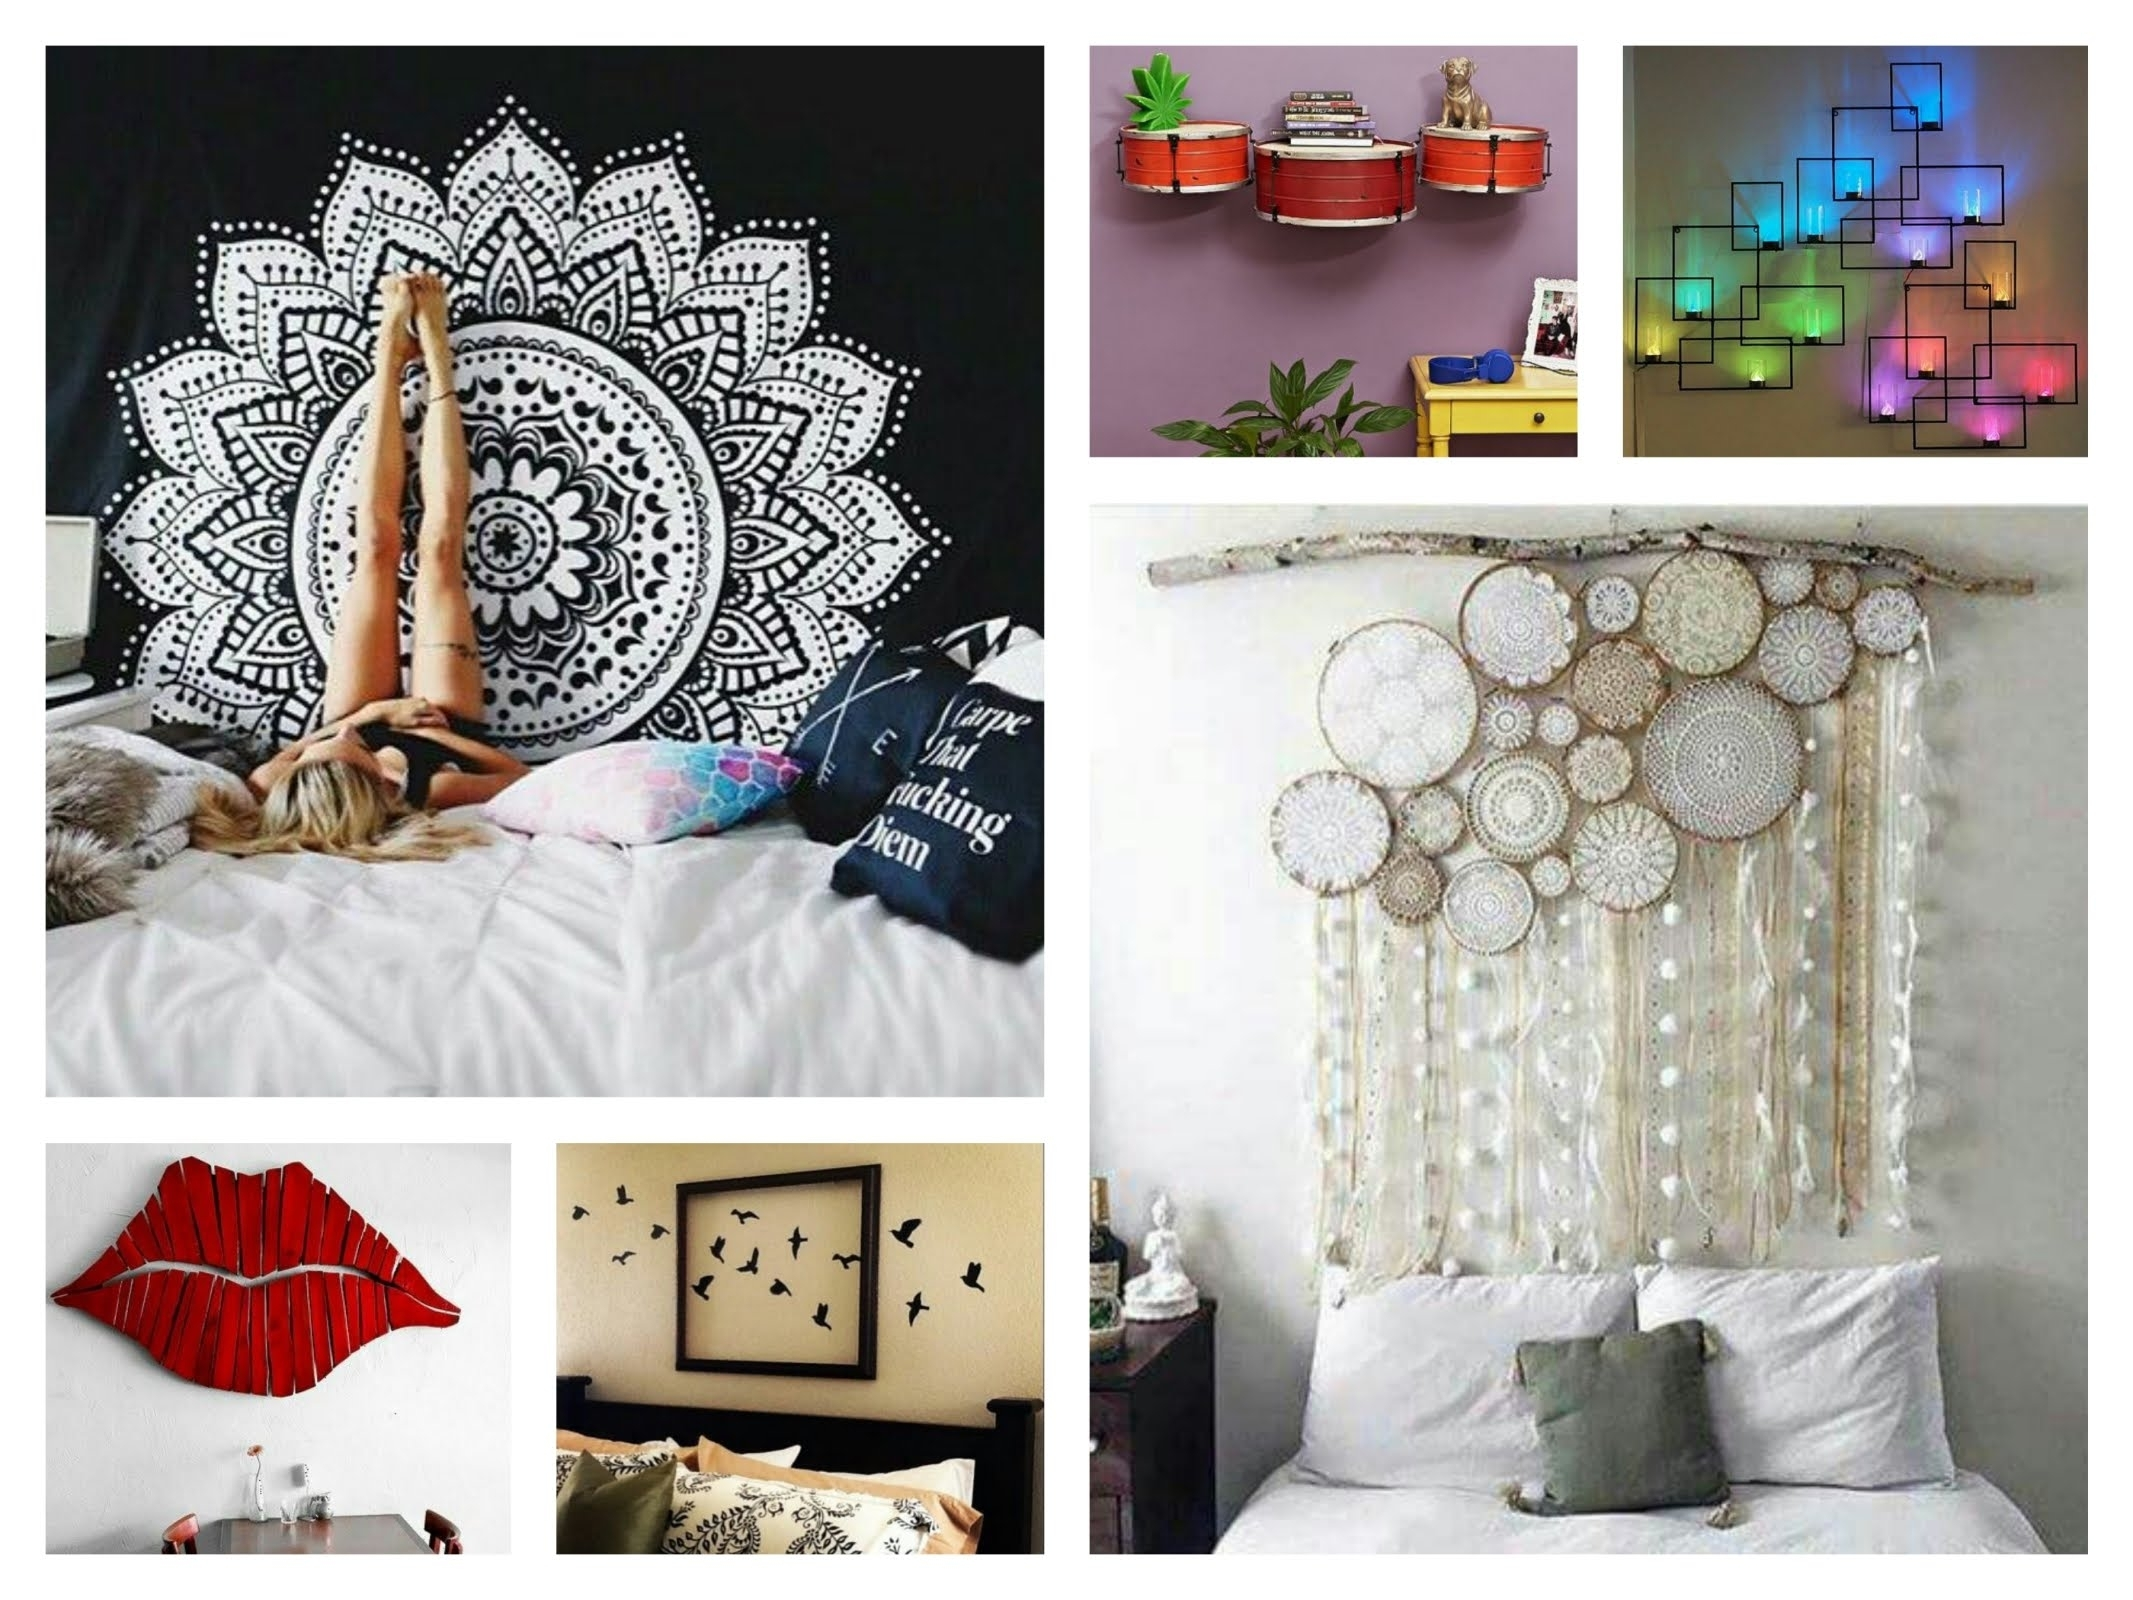 Creative Wall Decor Ideas – Diy Room Decorations – Youtube Within 2018 Wall Art Decors (View 5 of 15)